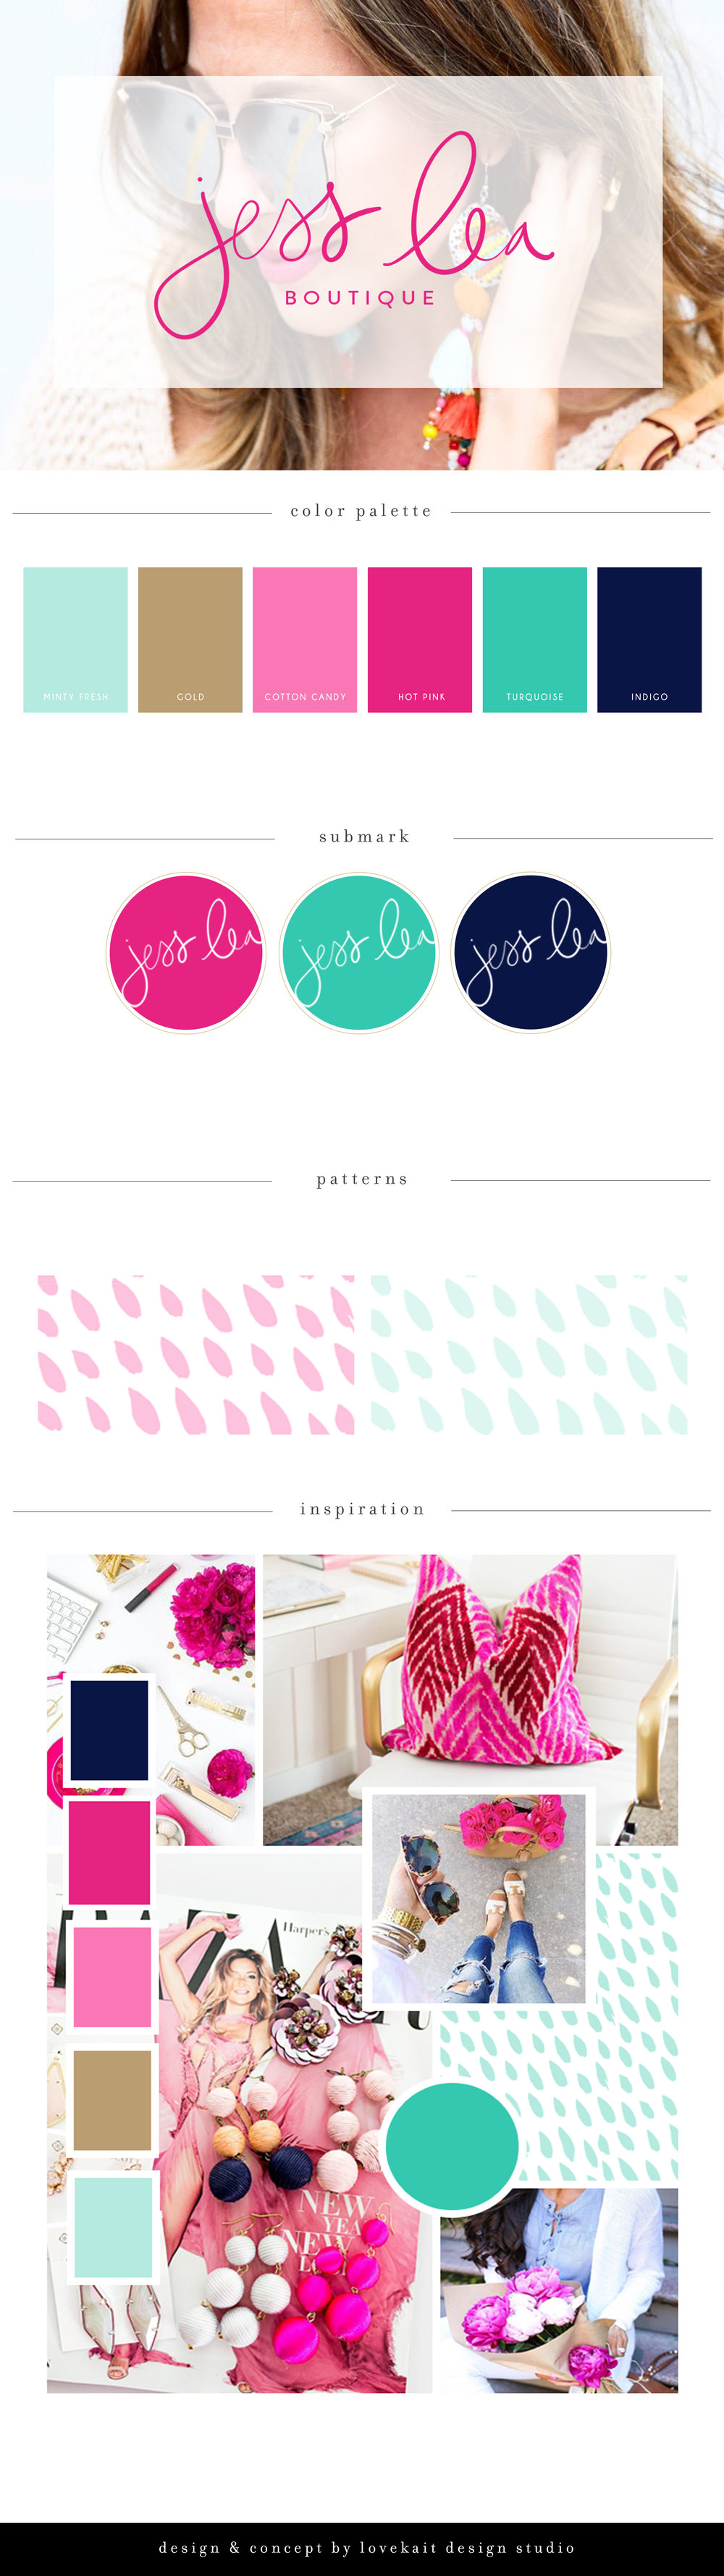 JessLea Boutique Branding and Logo Design